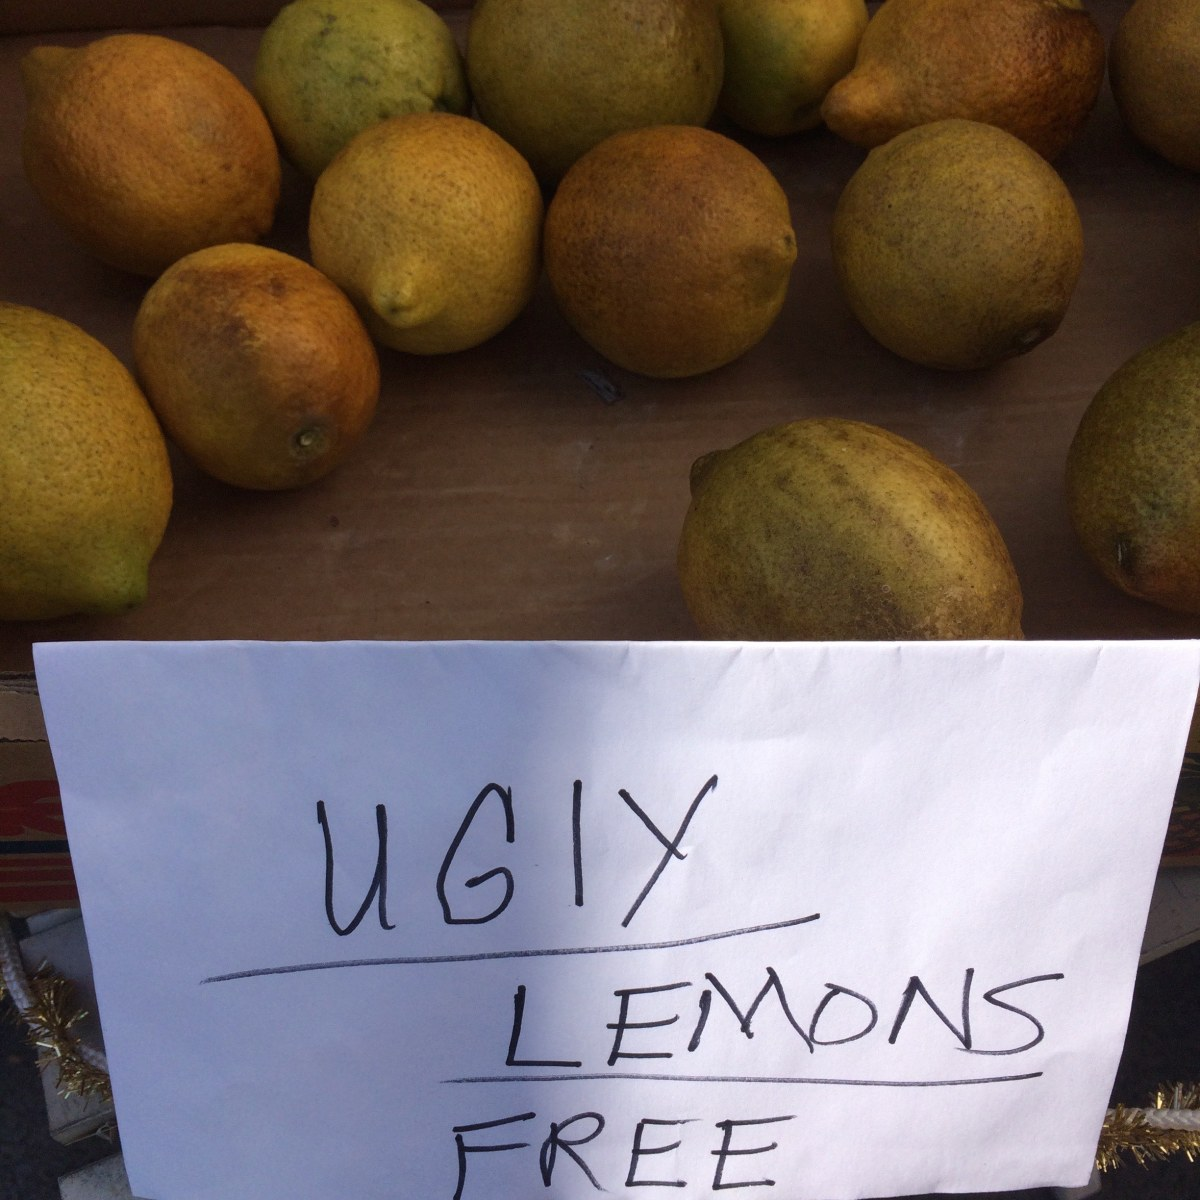 sign - ugly lemons free